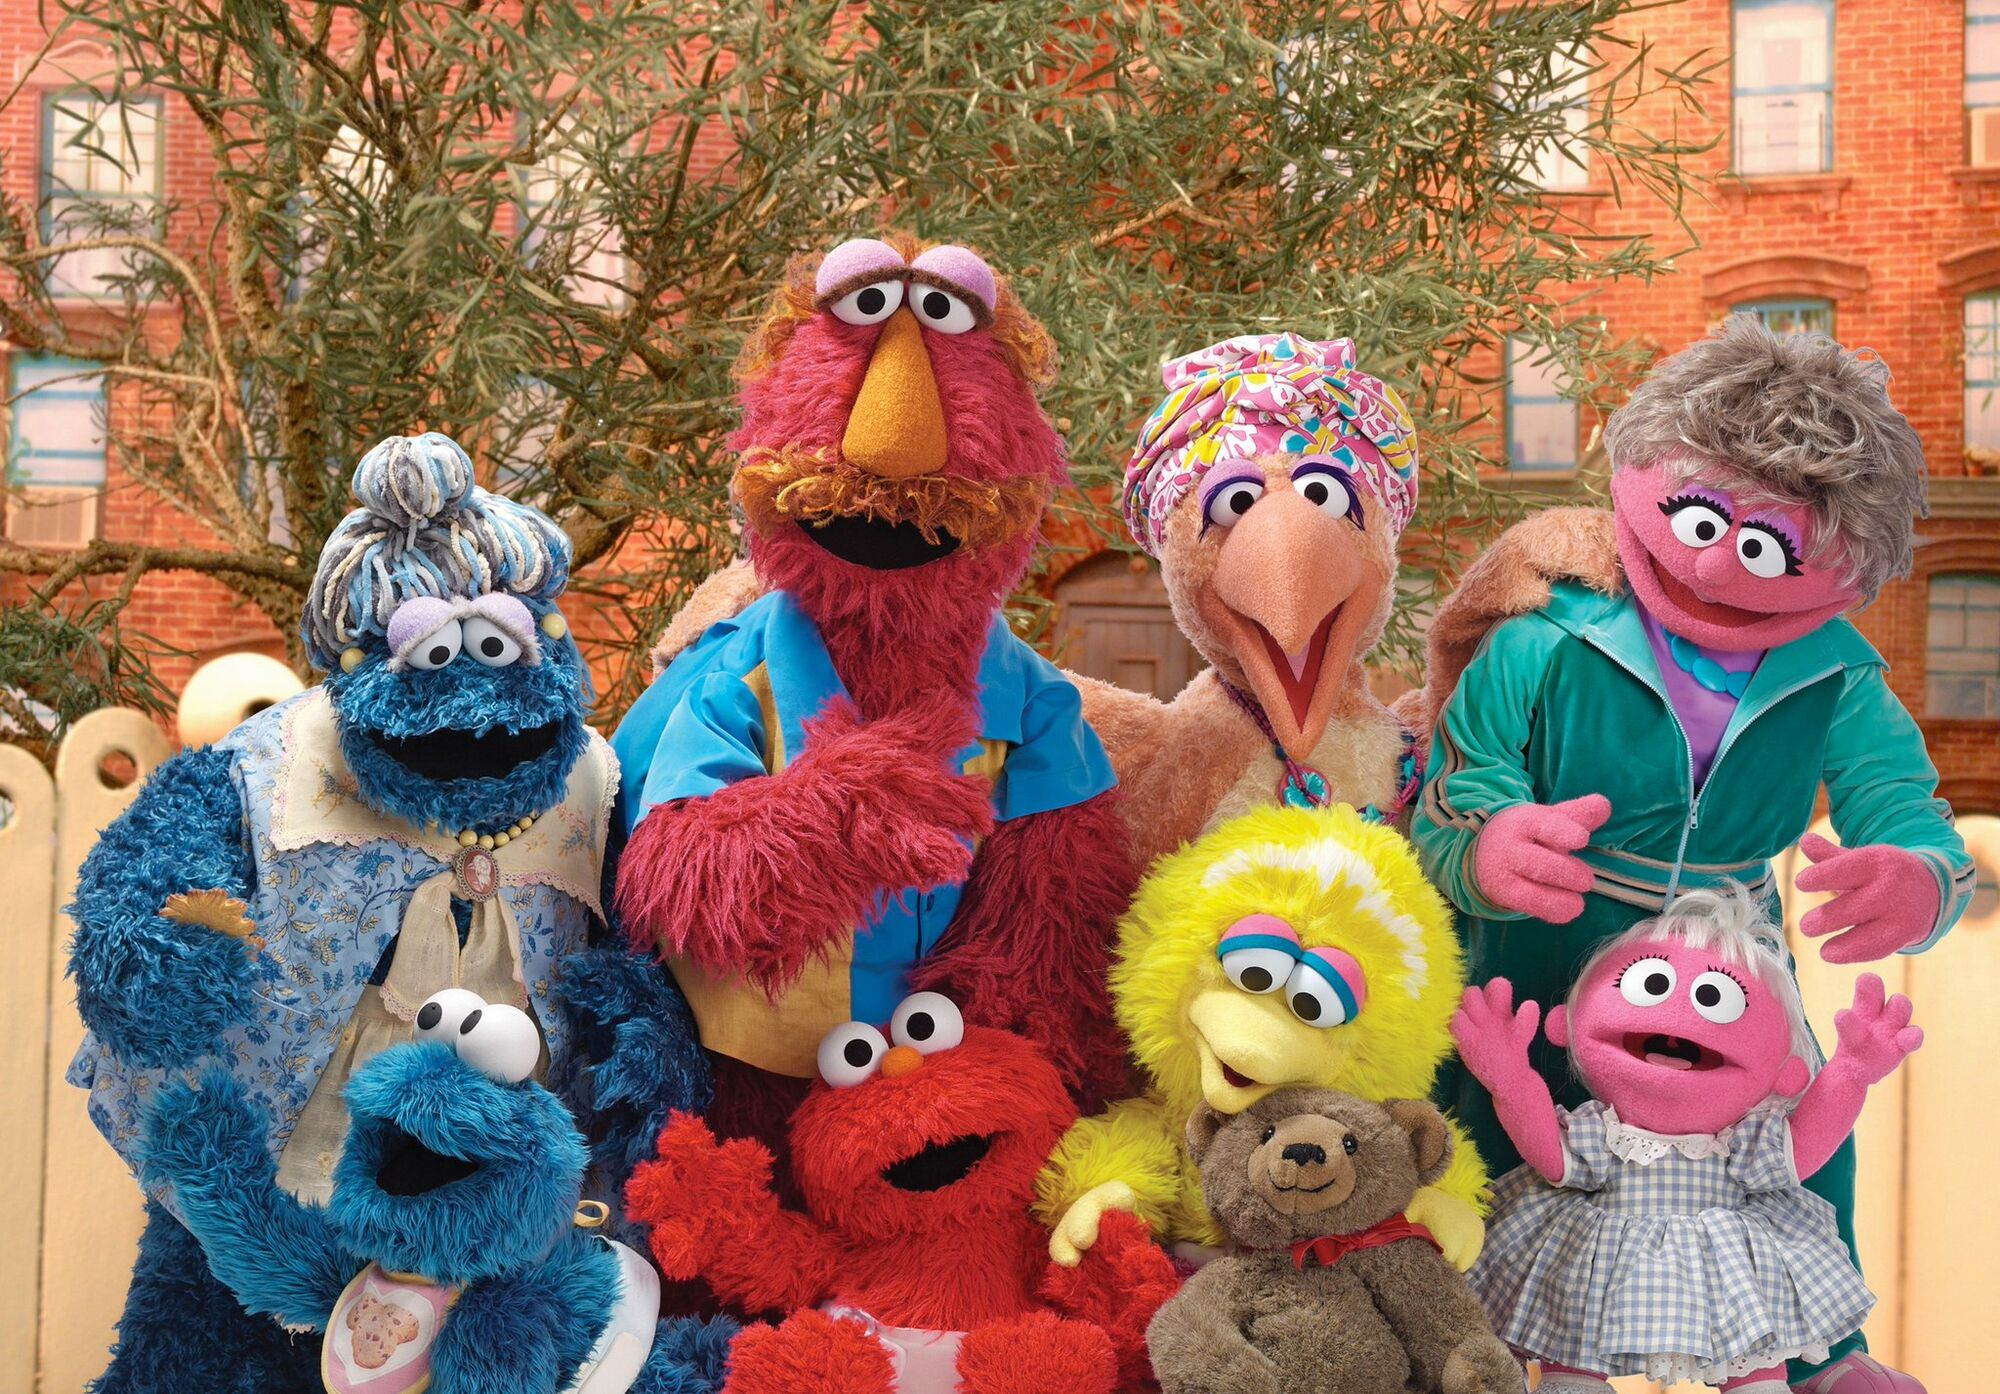 I title the review as Rest in Peace only because if you like me are a child born of the early 1980s or earlier that grew up with Sesame Street then you know